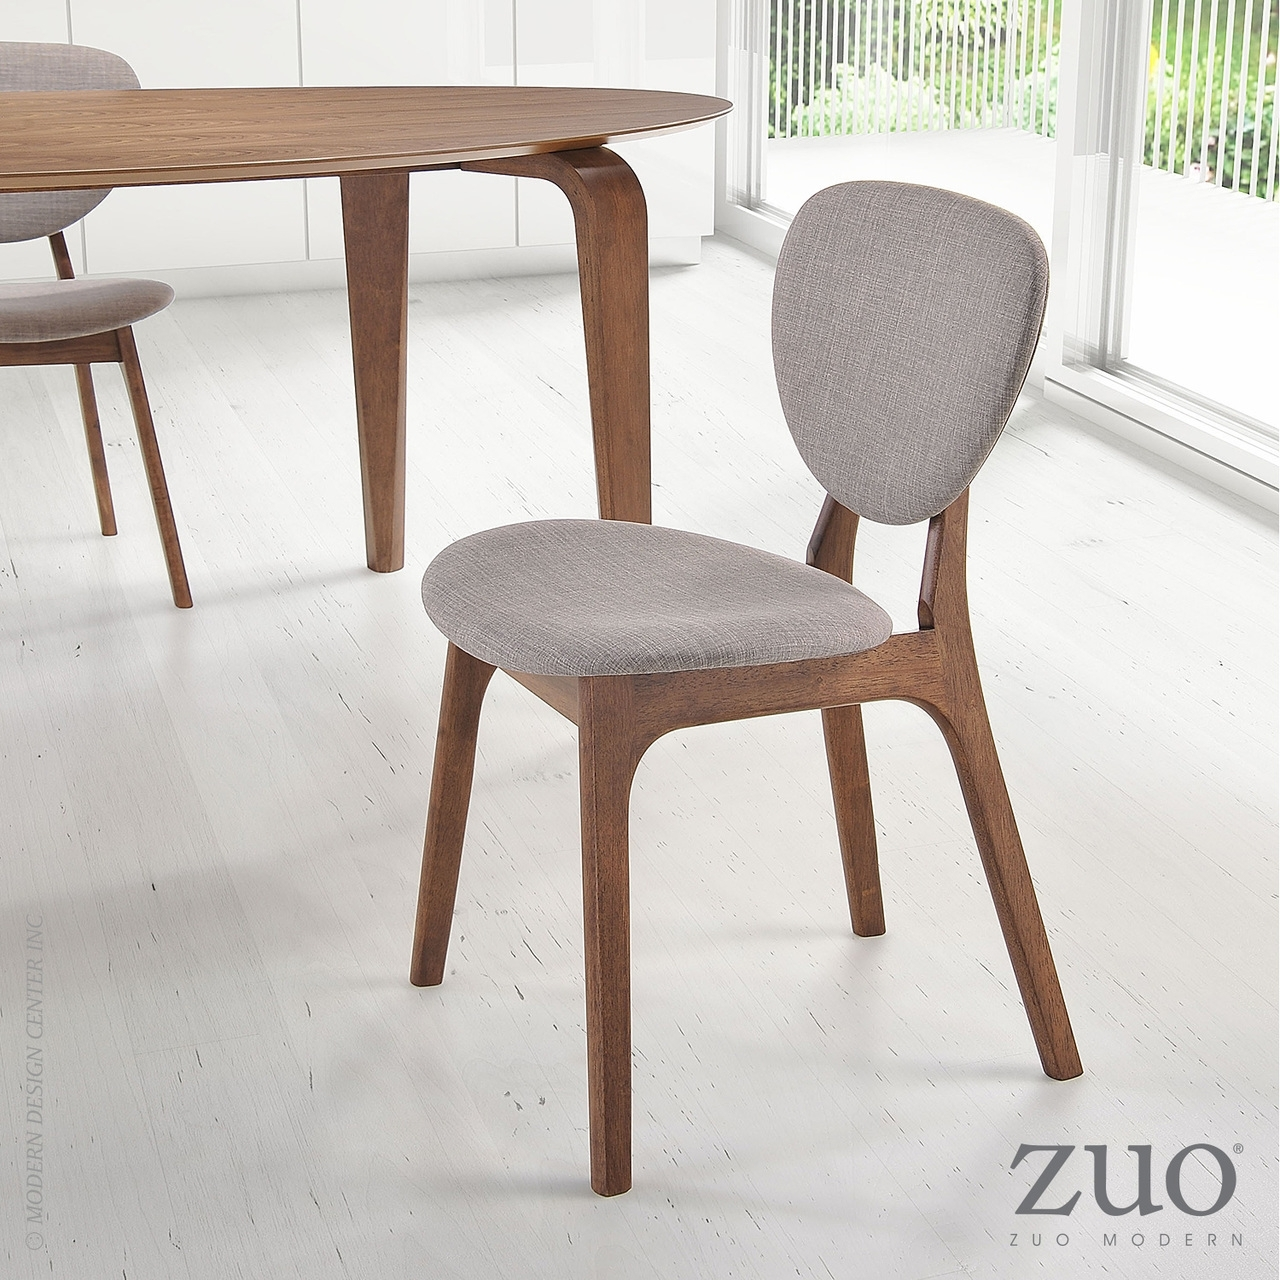 Zuo Mod Pertaining To Omni Side Chairs (#20 of 20)